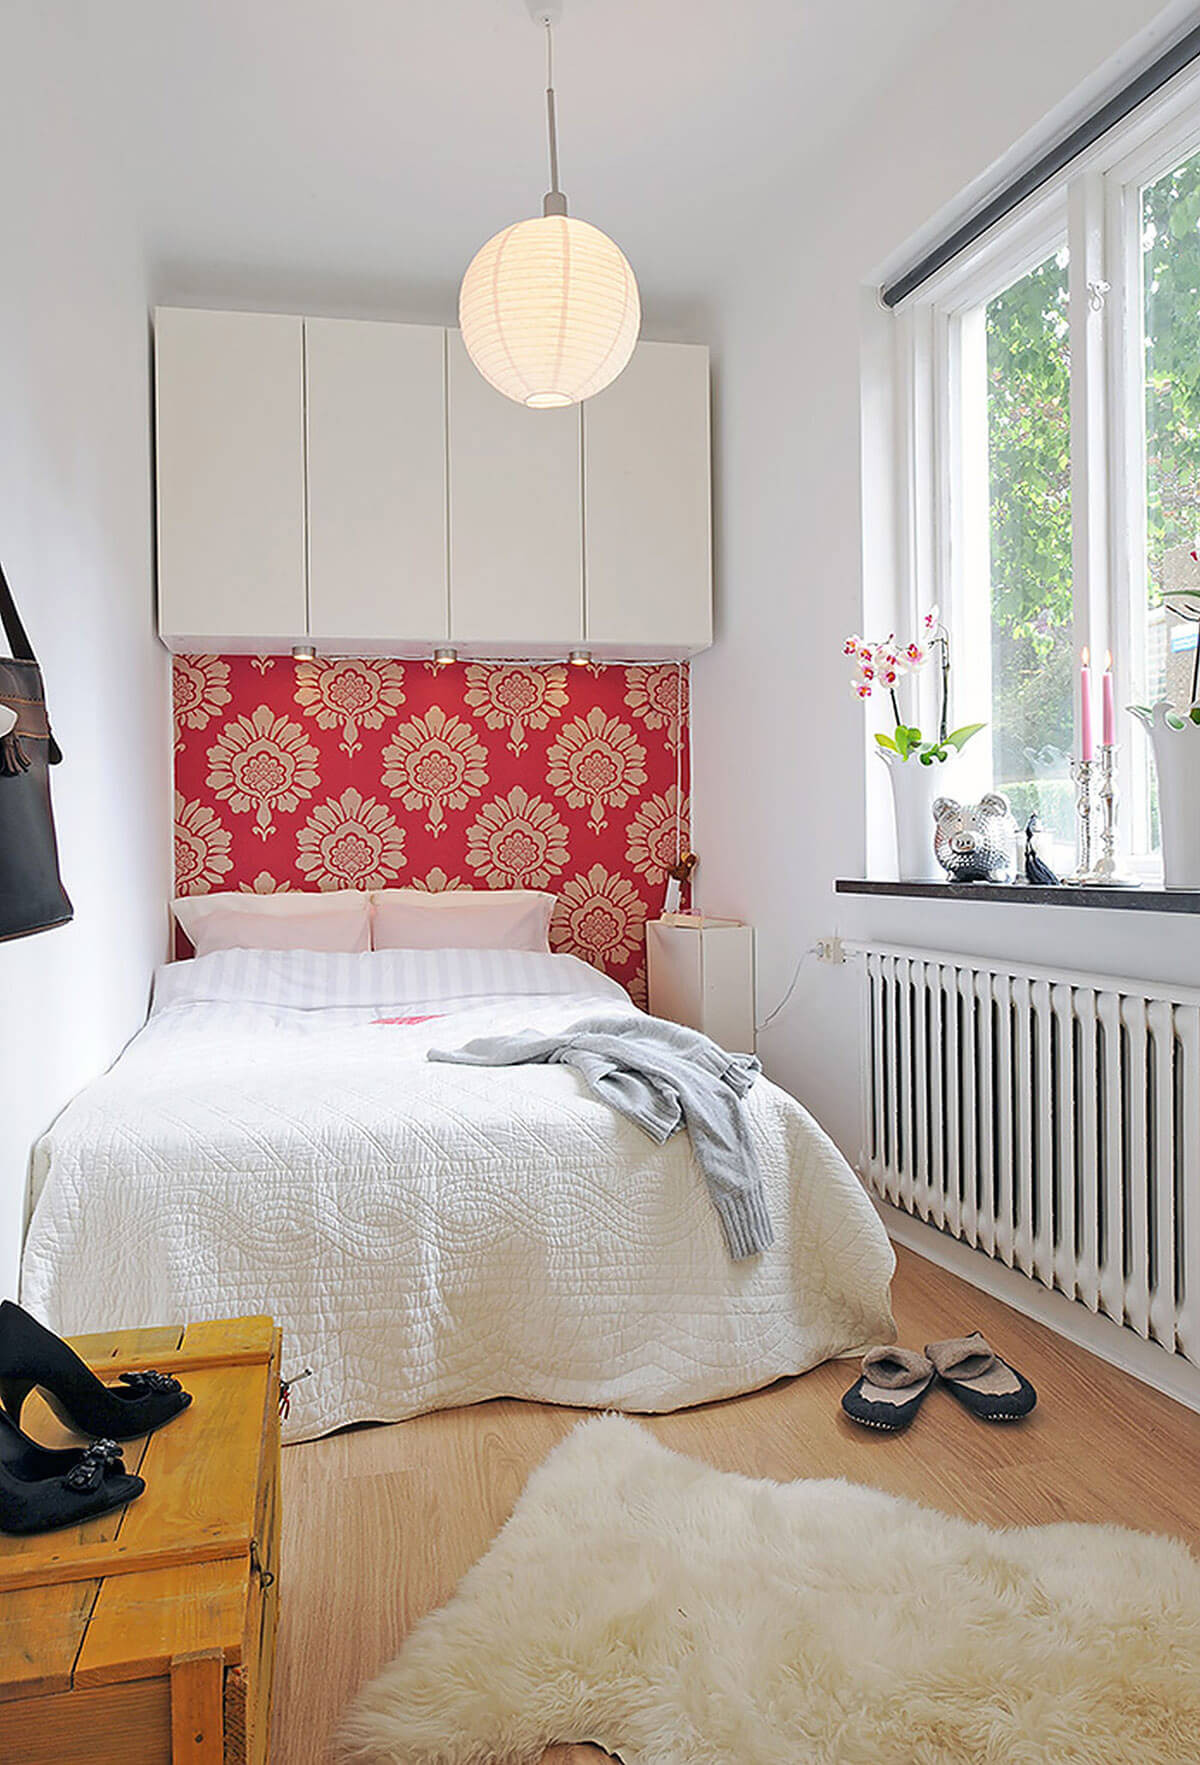 Best ideas about Small Bedroom Ideas . Save or Pin 37 Best Small Bedroom Ideas and Designs for 2019 Now.